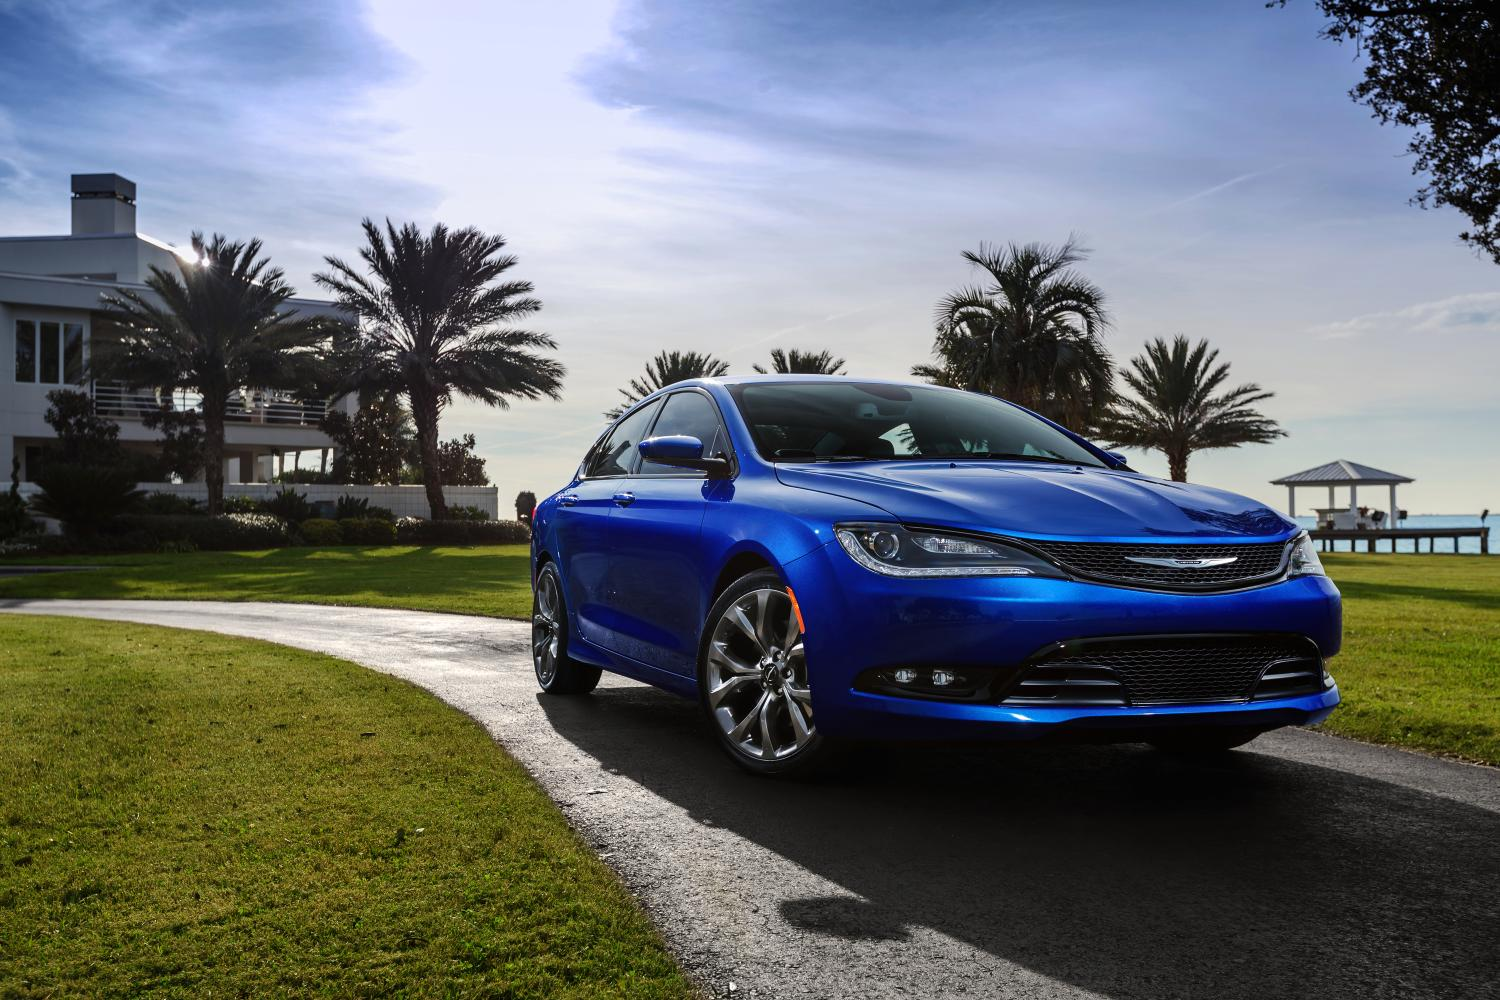 New Chrysler 200 Wallpaper 1500x1000